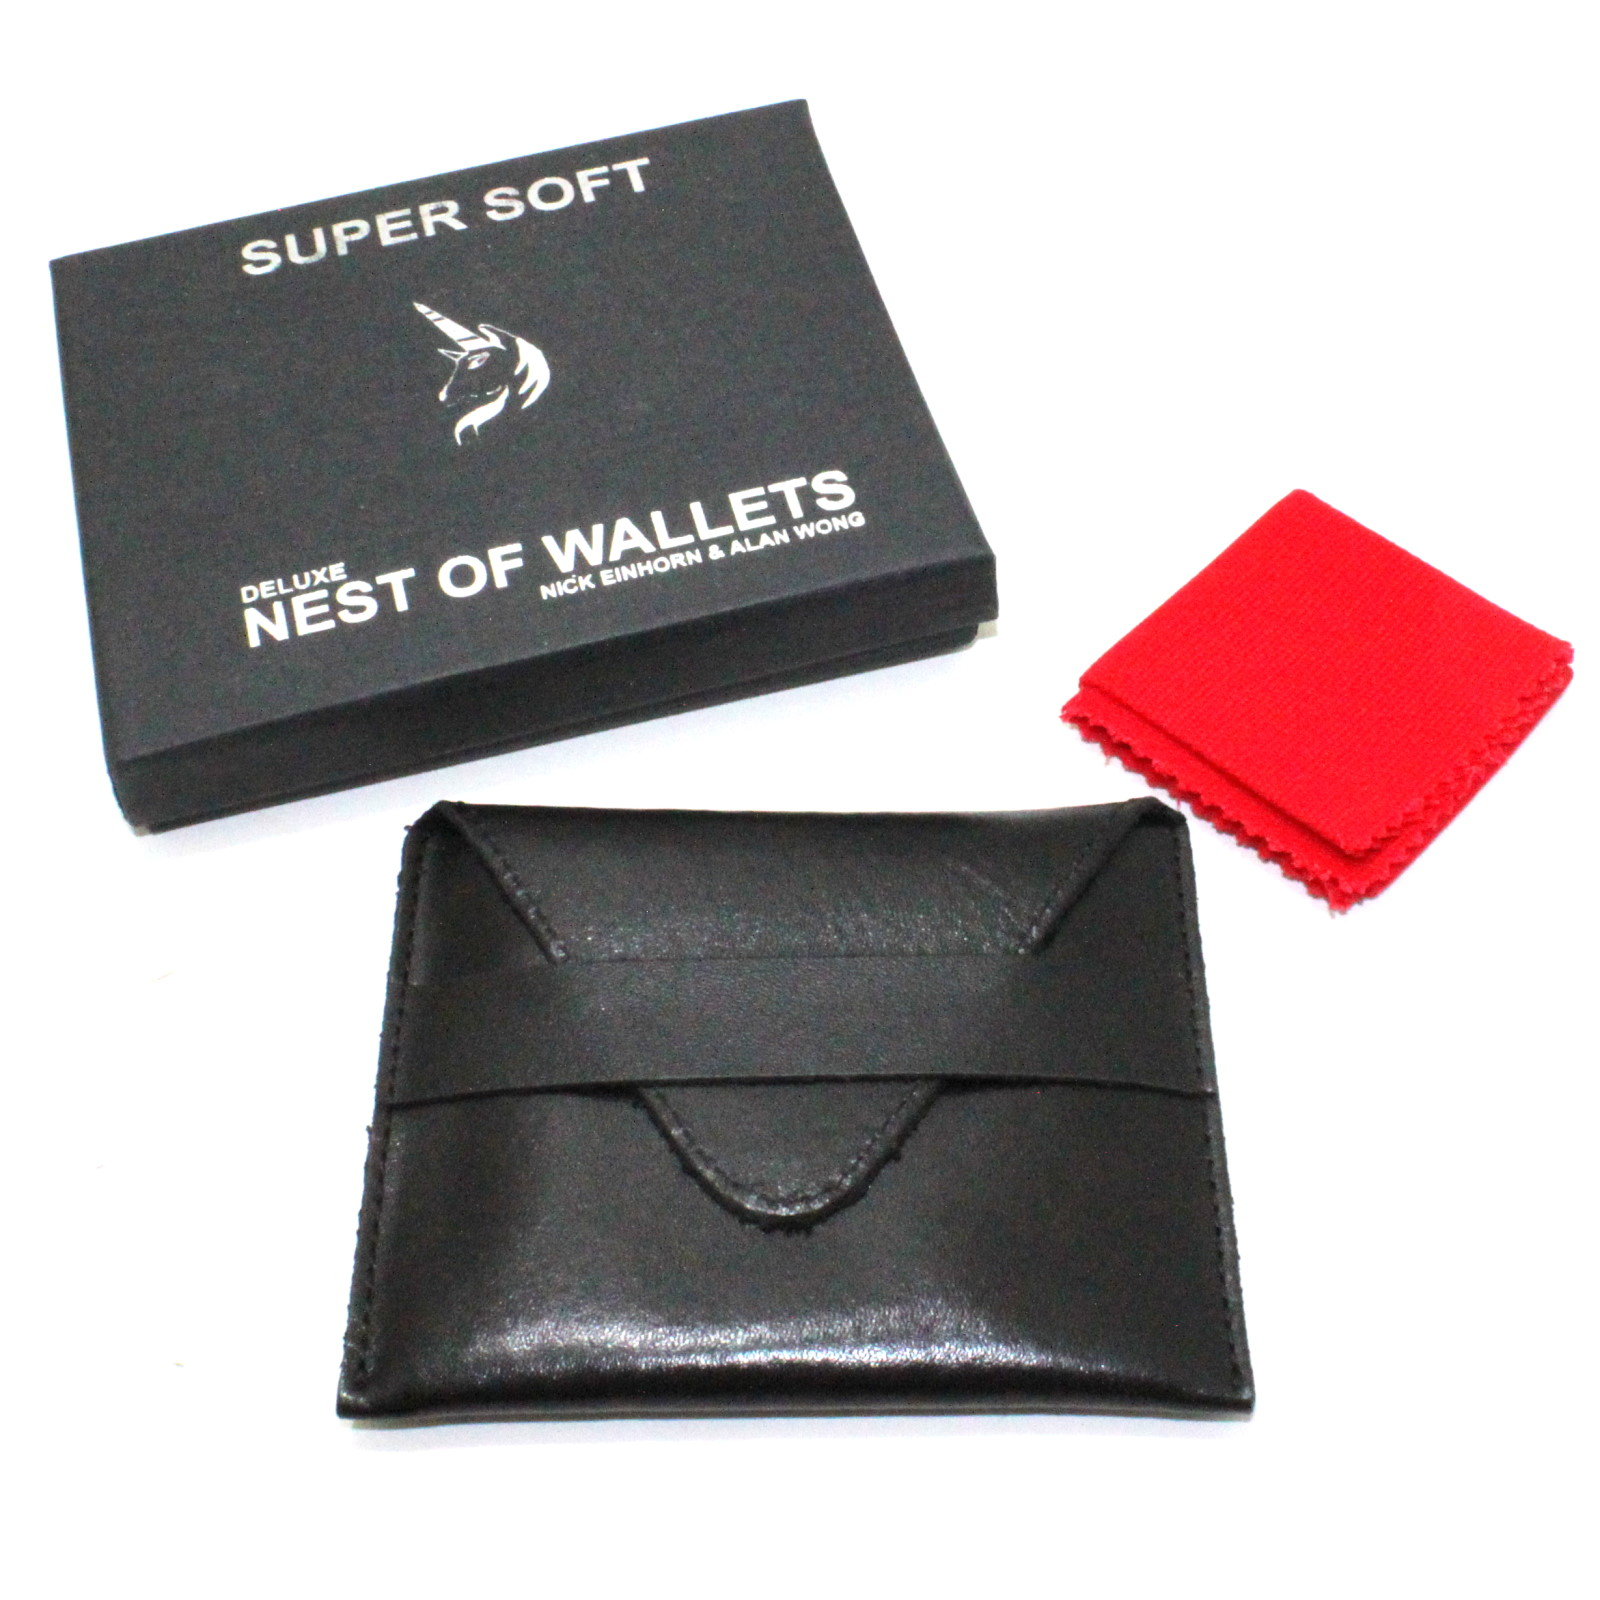 Super Soft Nest of Wallets by Nick Einhorn, Alan Wong